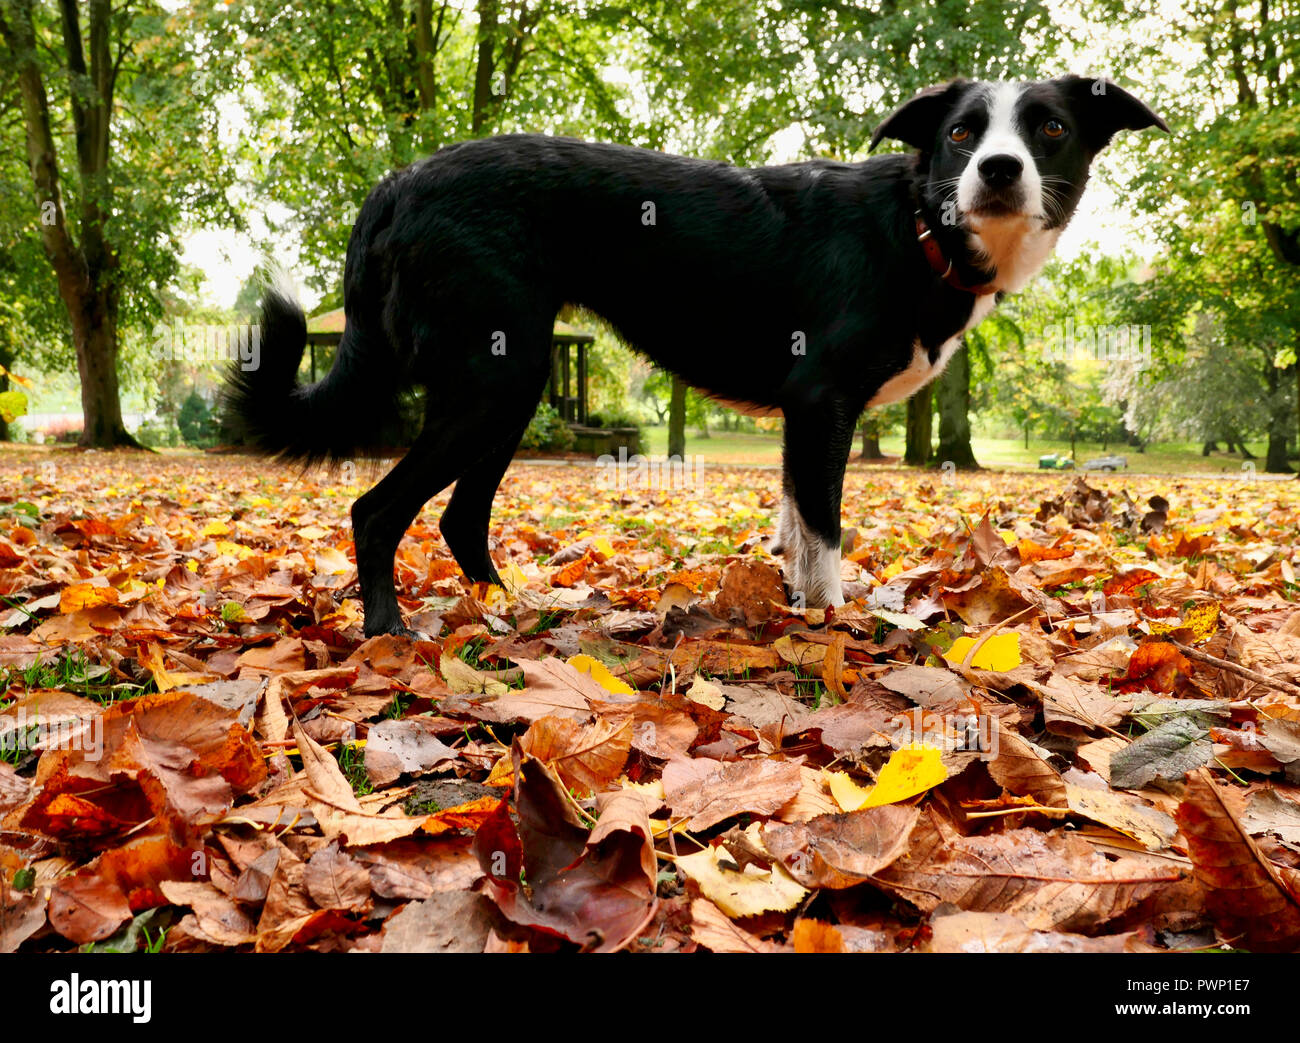 Ashbourne Park, Derbyshire, UK. 17th Oct, 2018. UK Weather: Autumn leaves fall in Ashbourne Park, Derbyshire the gateway to the Peak District National park Credit: Doug Blane/Alamy Live News Stock Photo